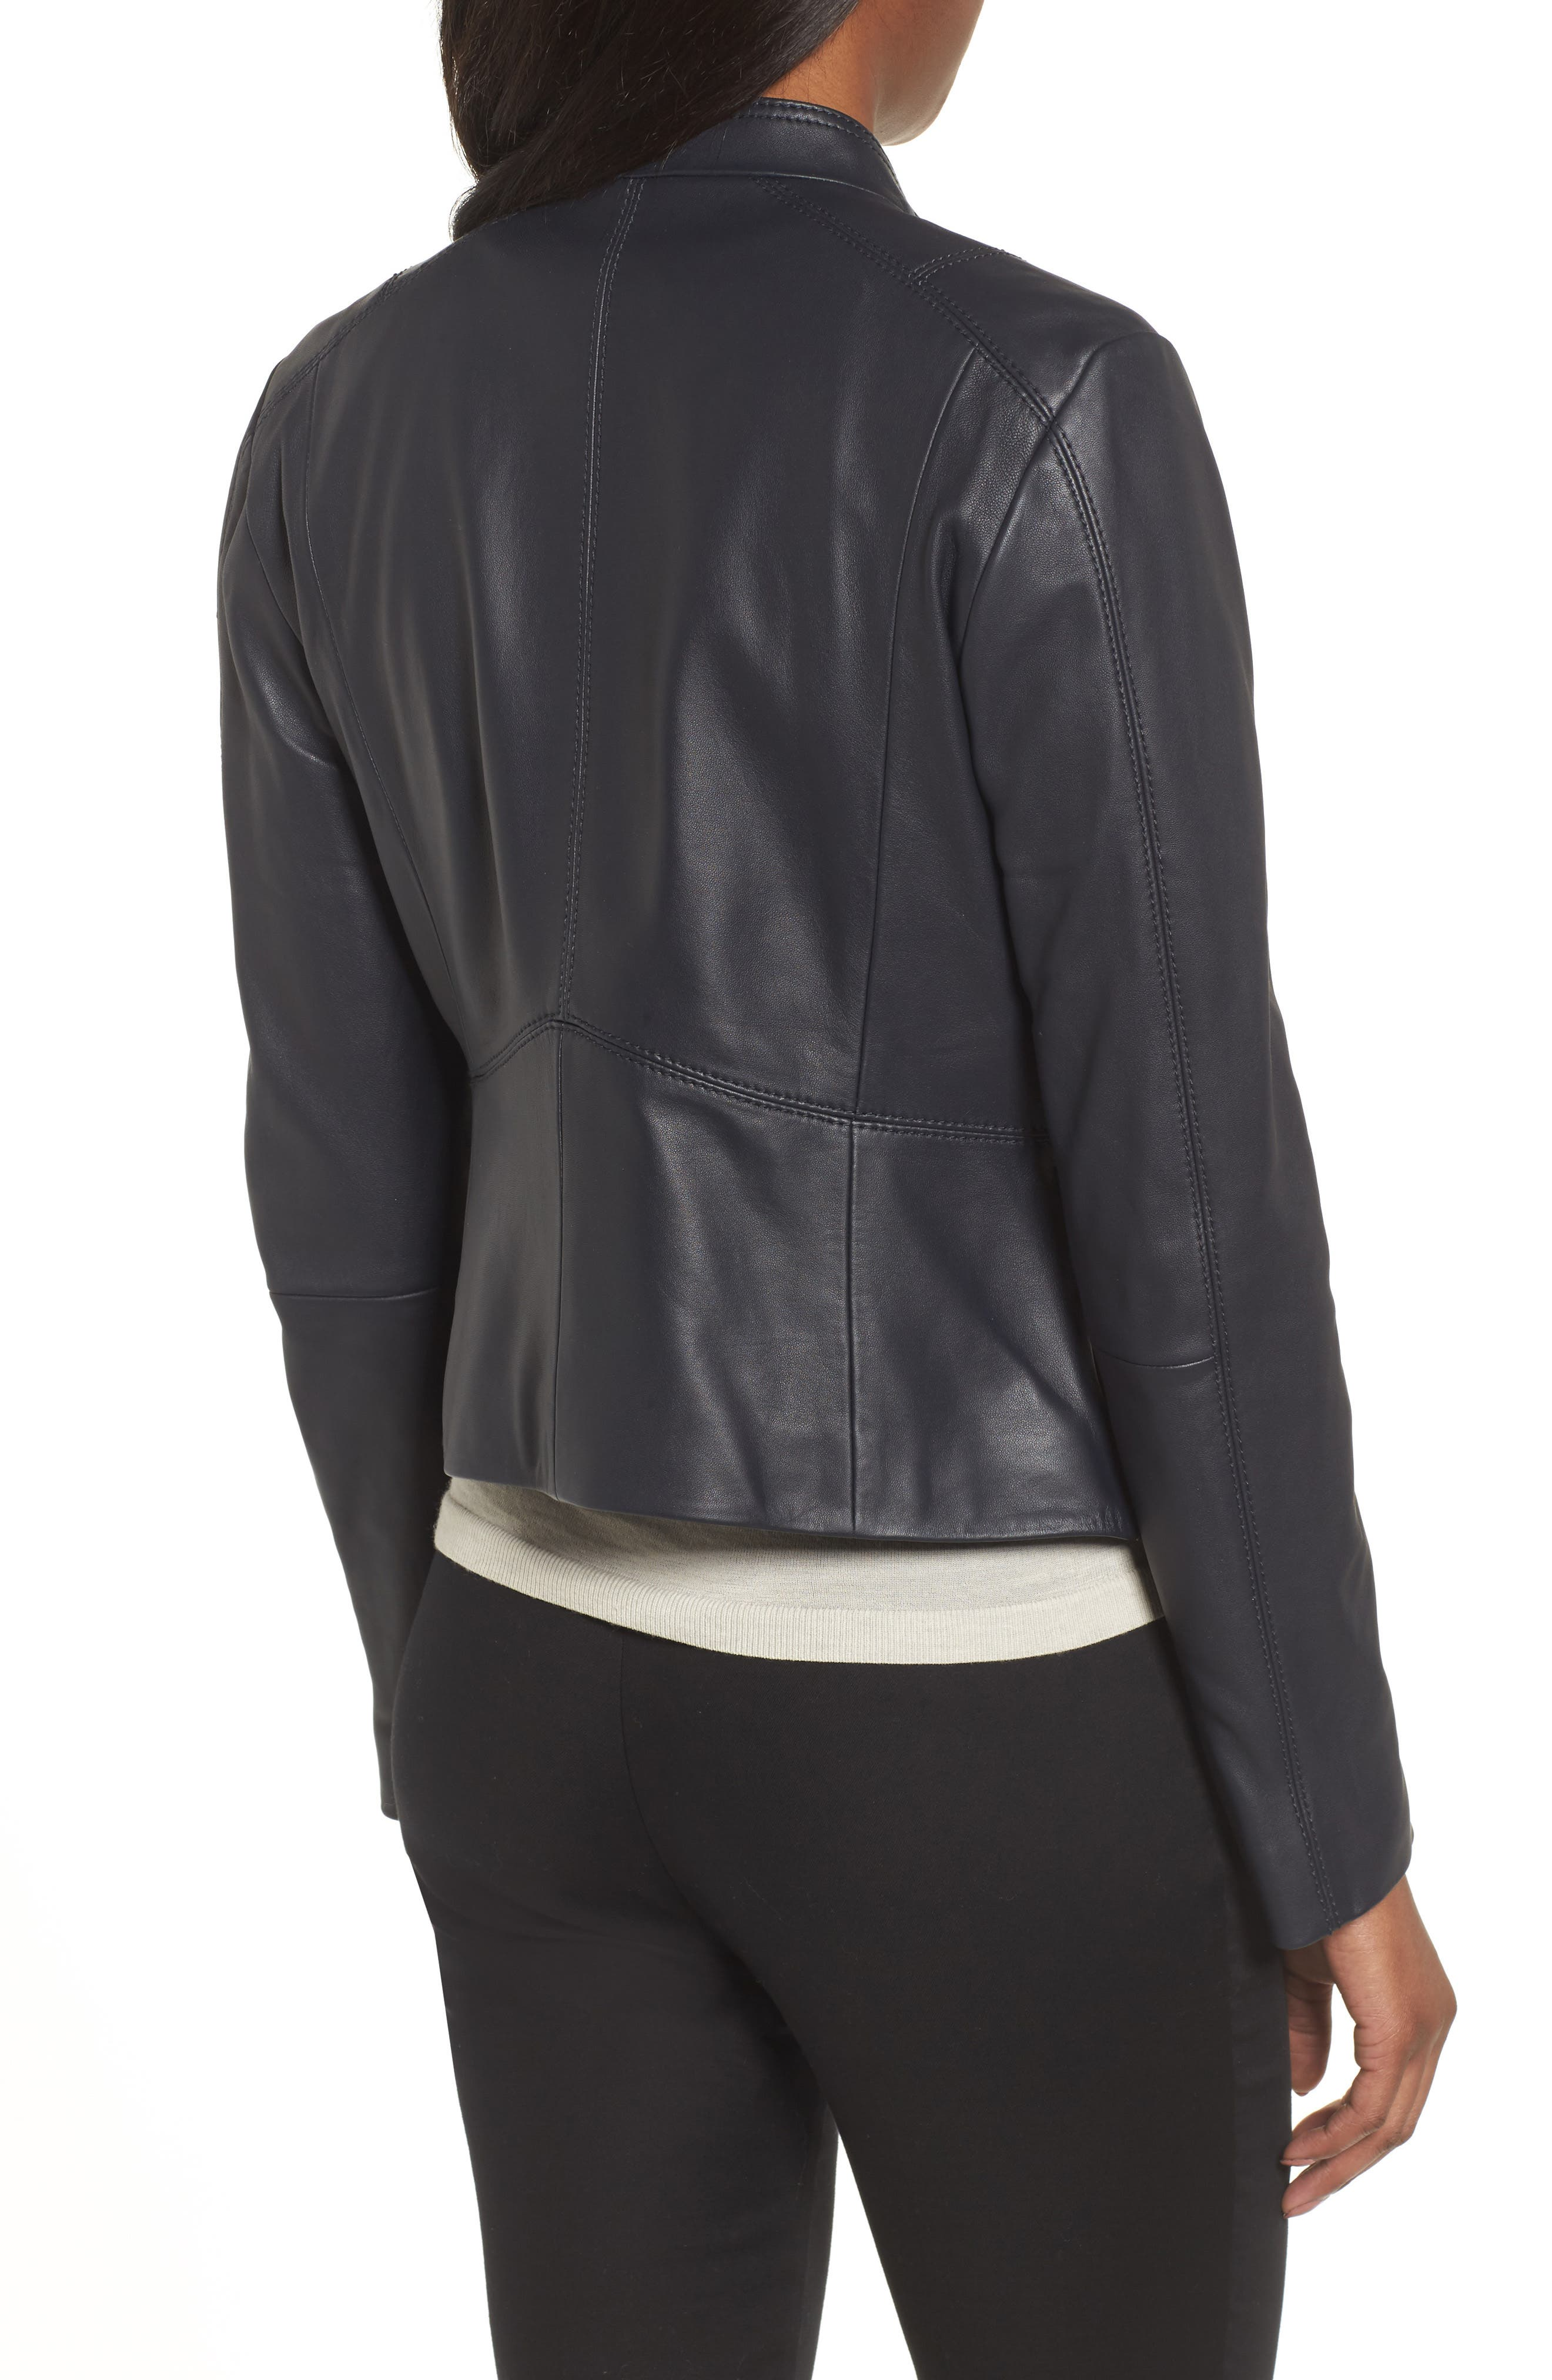 Sammonaie Leather Jacket,                             Alternate thumbnail 2, color,                             480